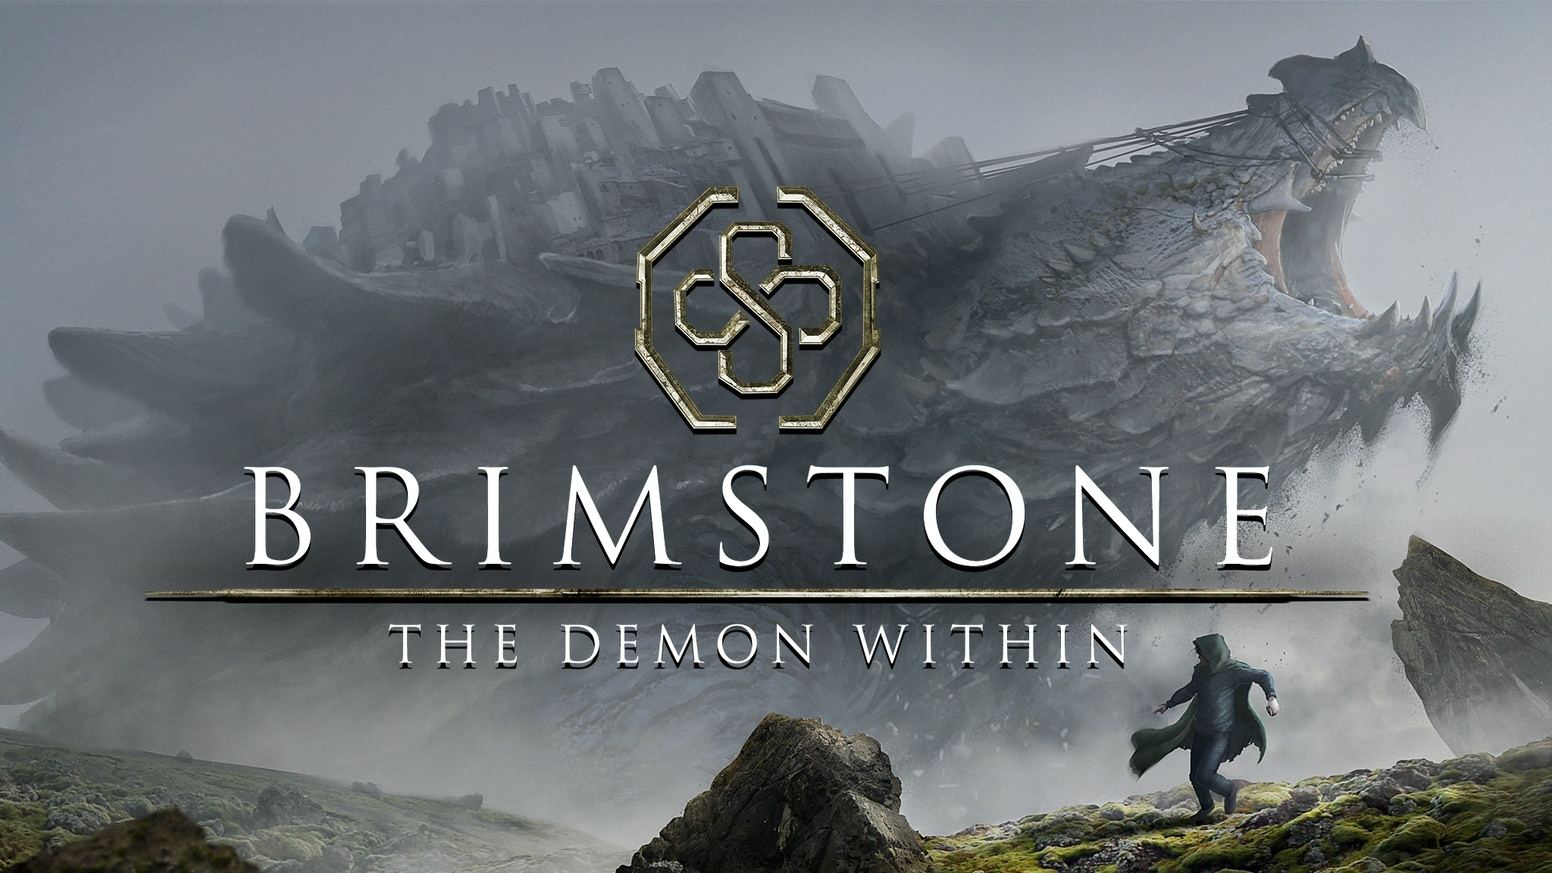 Beneath our ordinary world lies a place of eternal eclipse, a place to which all evil creatures have been banished: This is Brimstone.